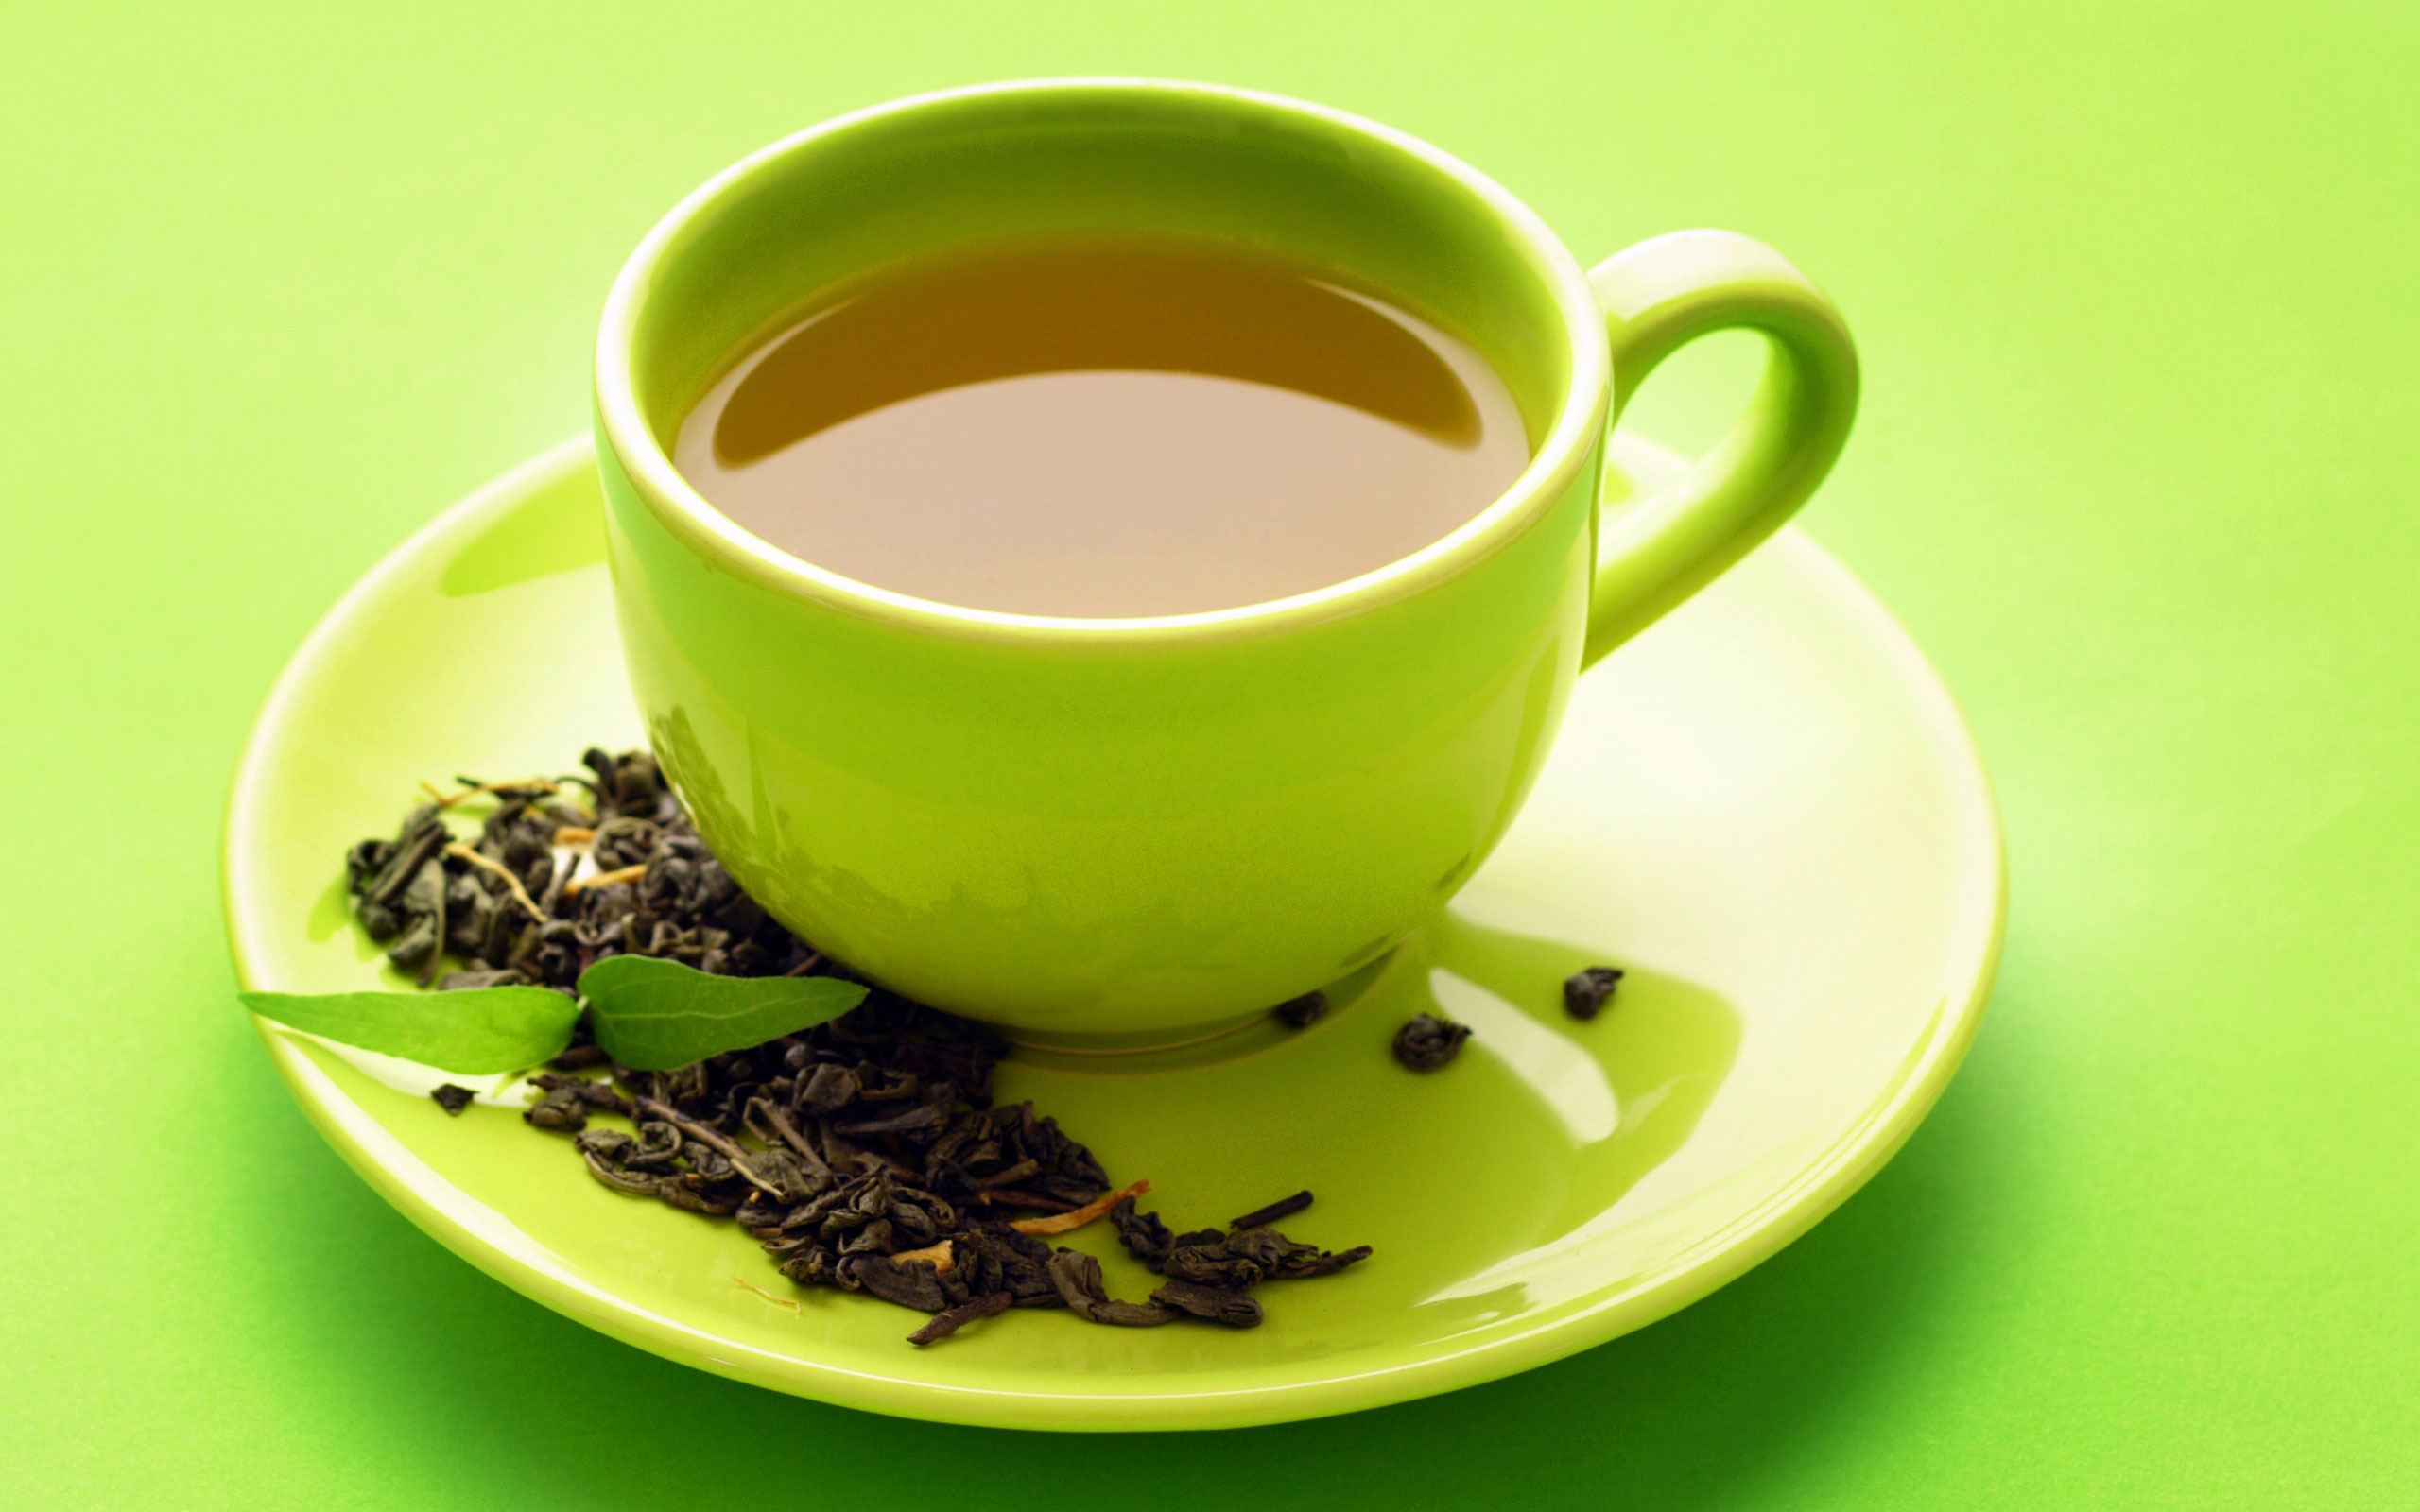 Cool image about Essiac tea cancer cure - it is cool